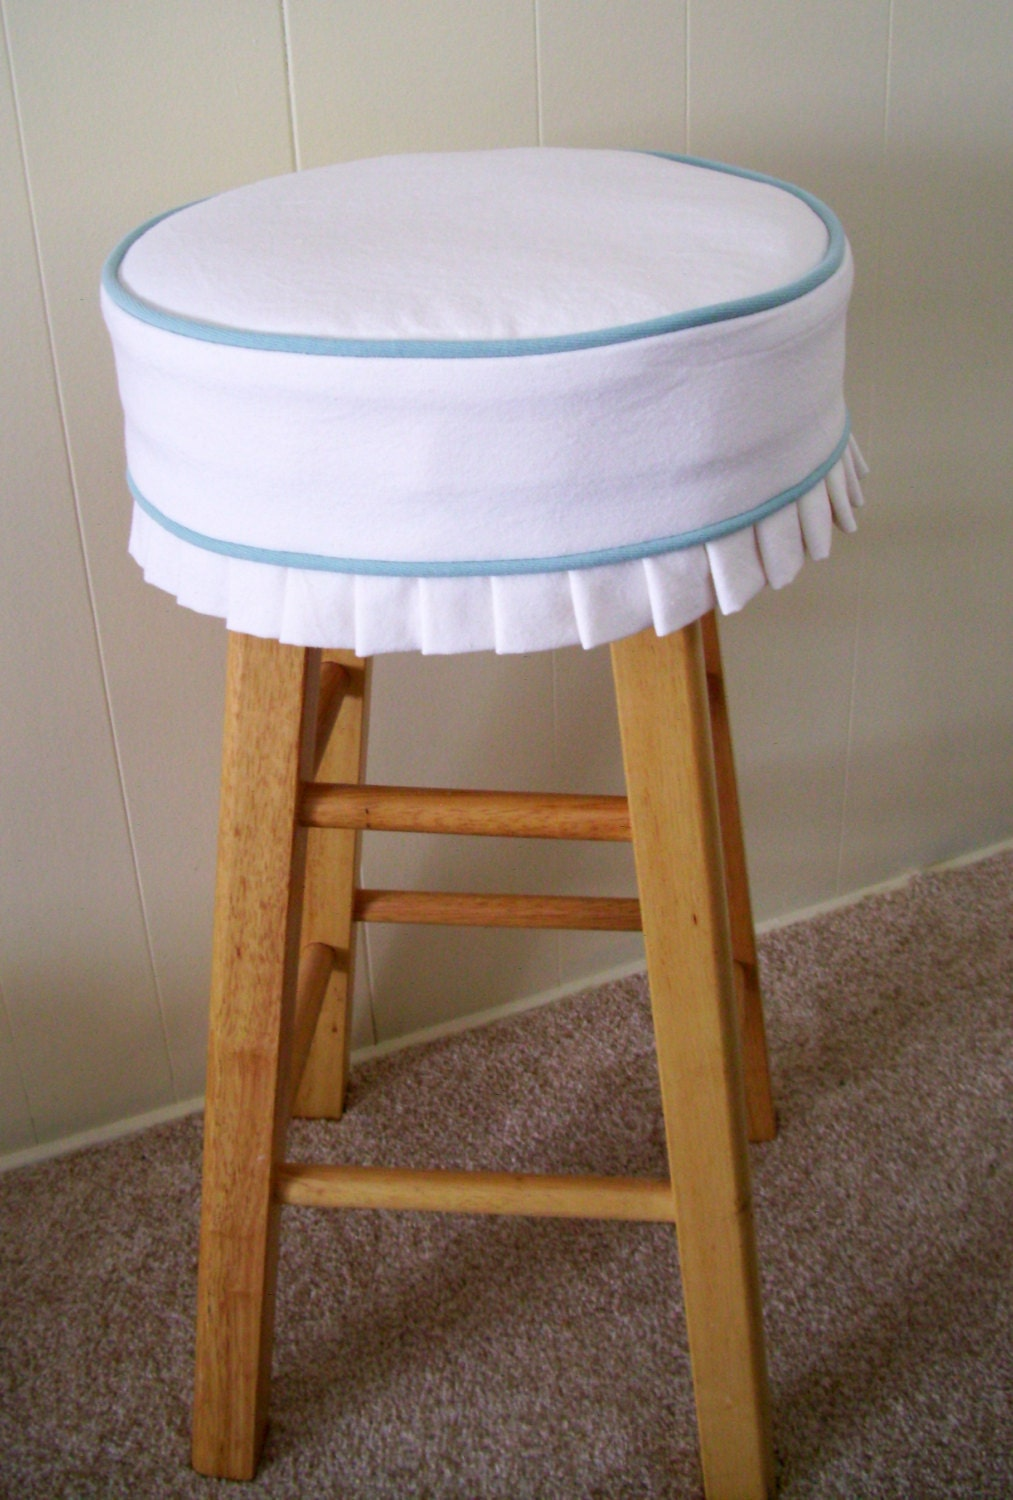 Bar Stool Slipcover and Cushion White with Blue Welt Barstool : ilfullxfull686447797l332 from www.etsy.com size 1013 x 1500 jpeg 307kB